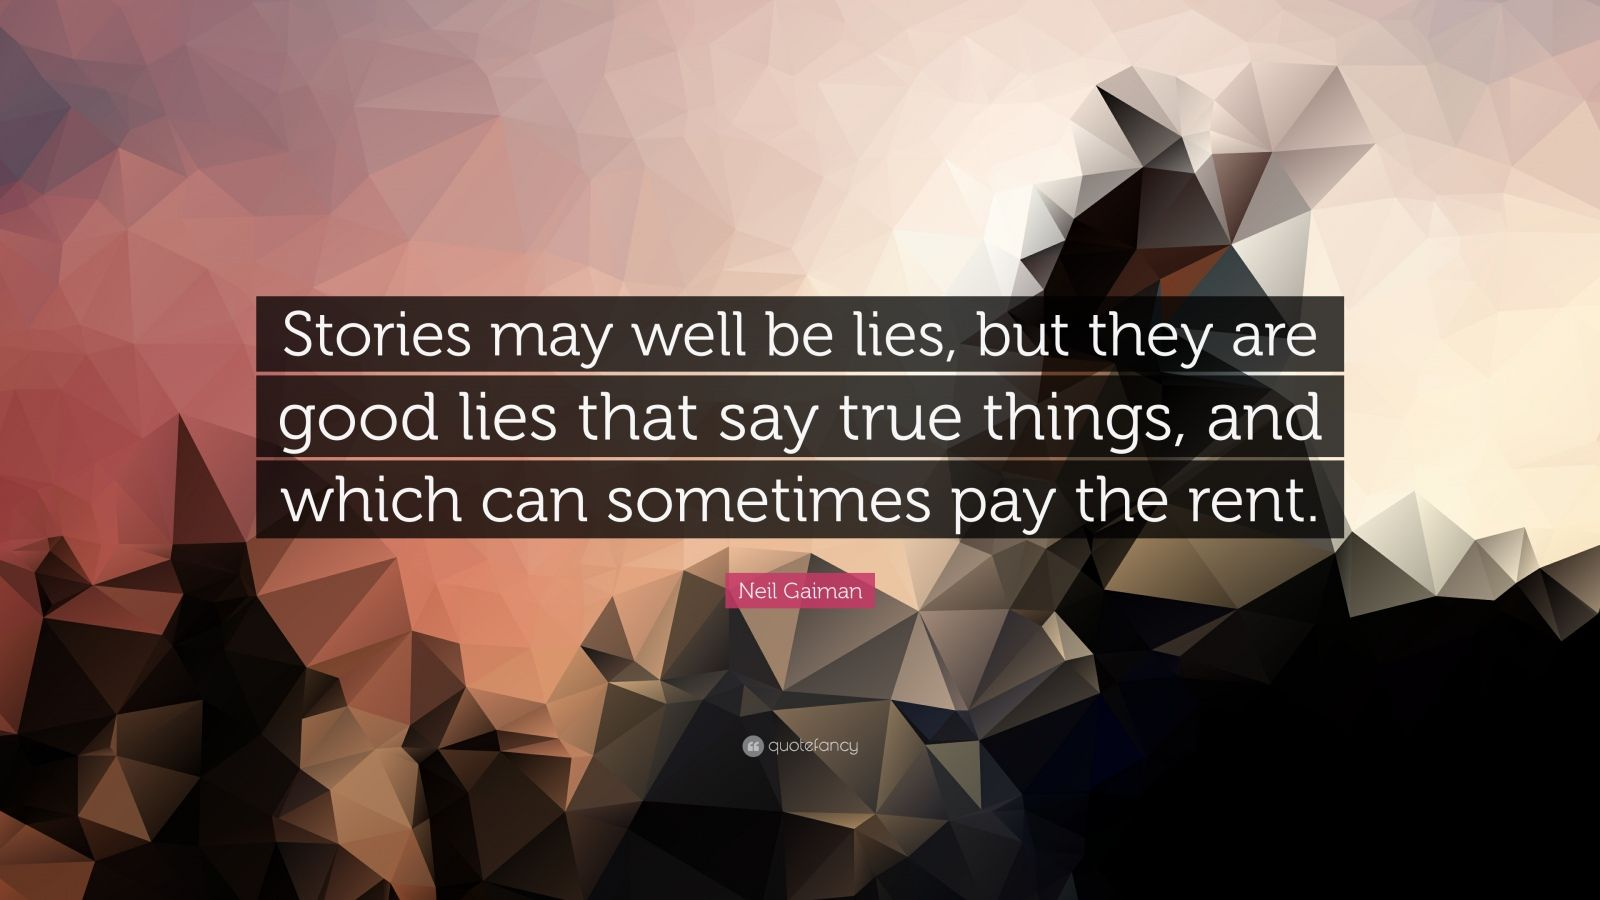 """Neil Gaiman Quote: """"Stories may well be lies, but they are good lies that say true things, and which can sometimes pay the rent."""""""